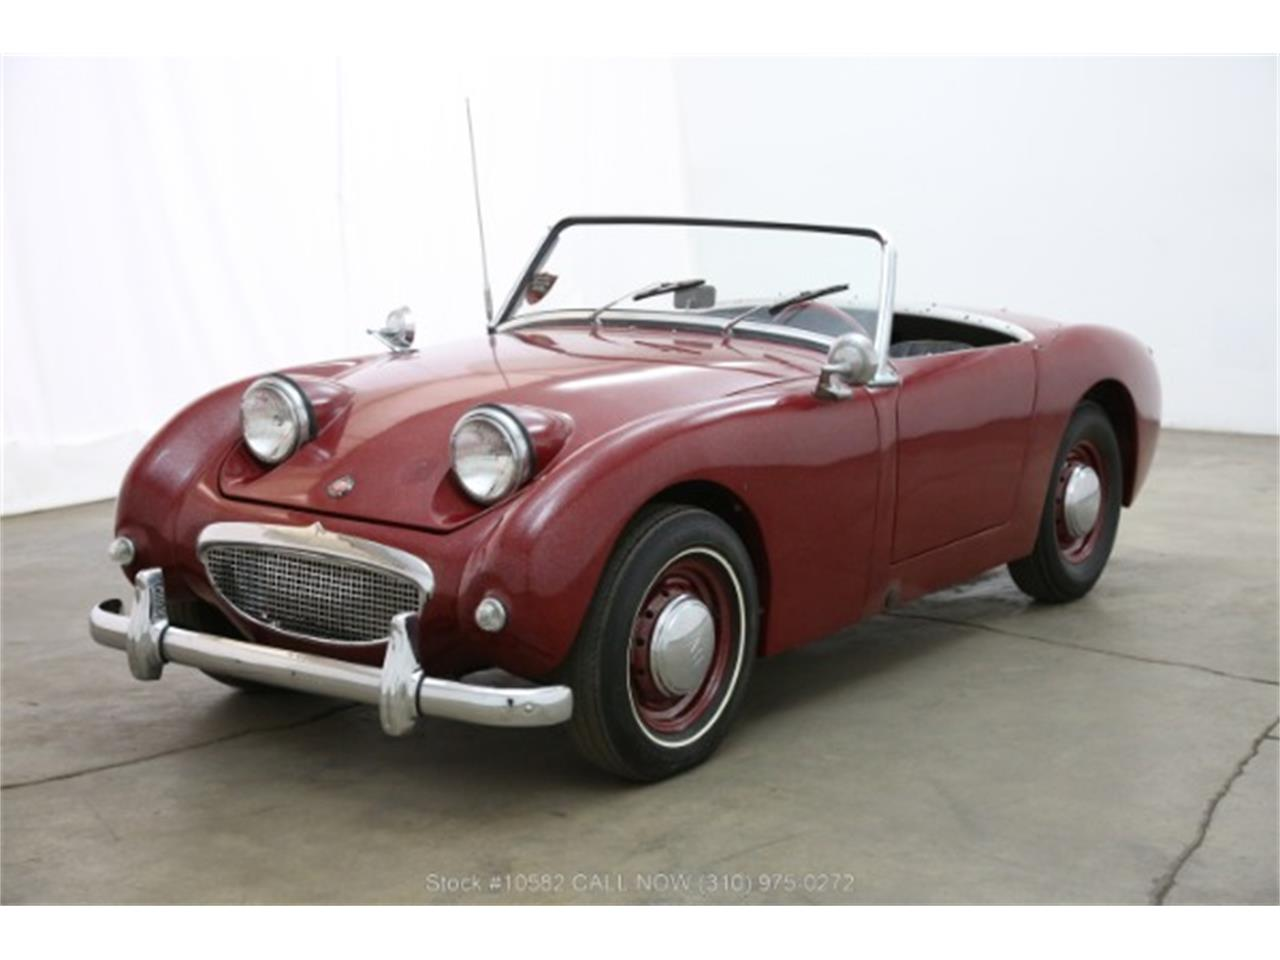 Large Picture of Classic 1960 Bugeye Sprite - $9,750.00 - PKL4